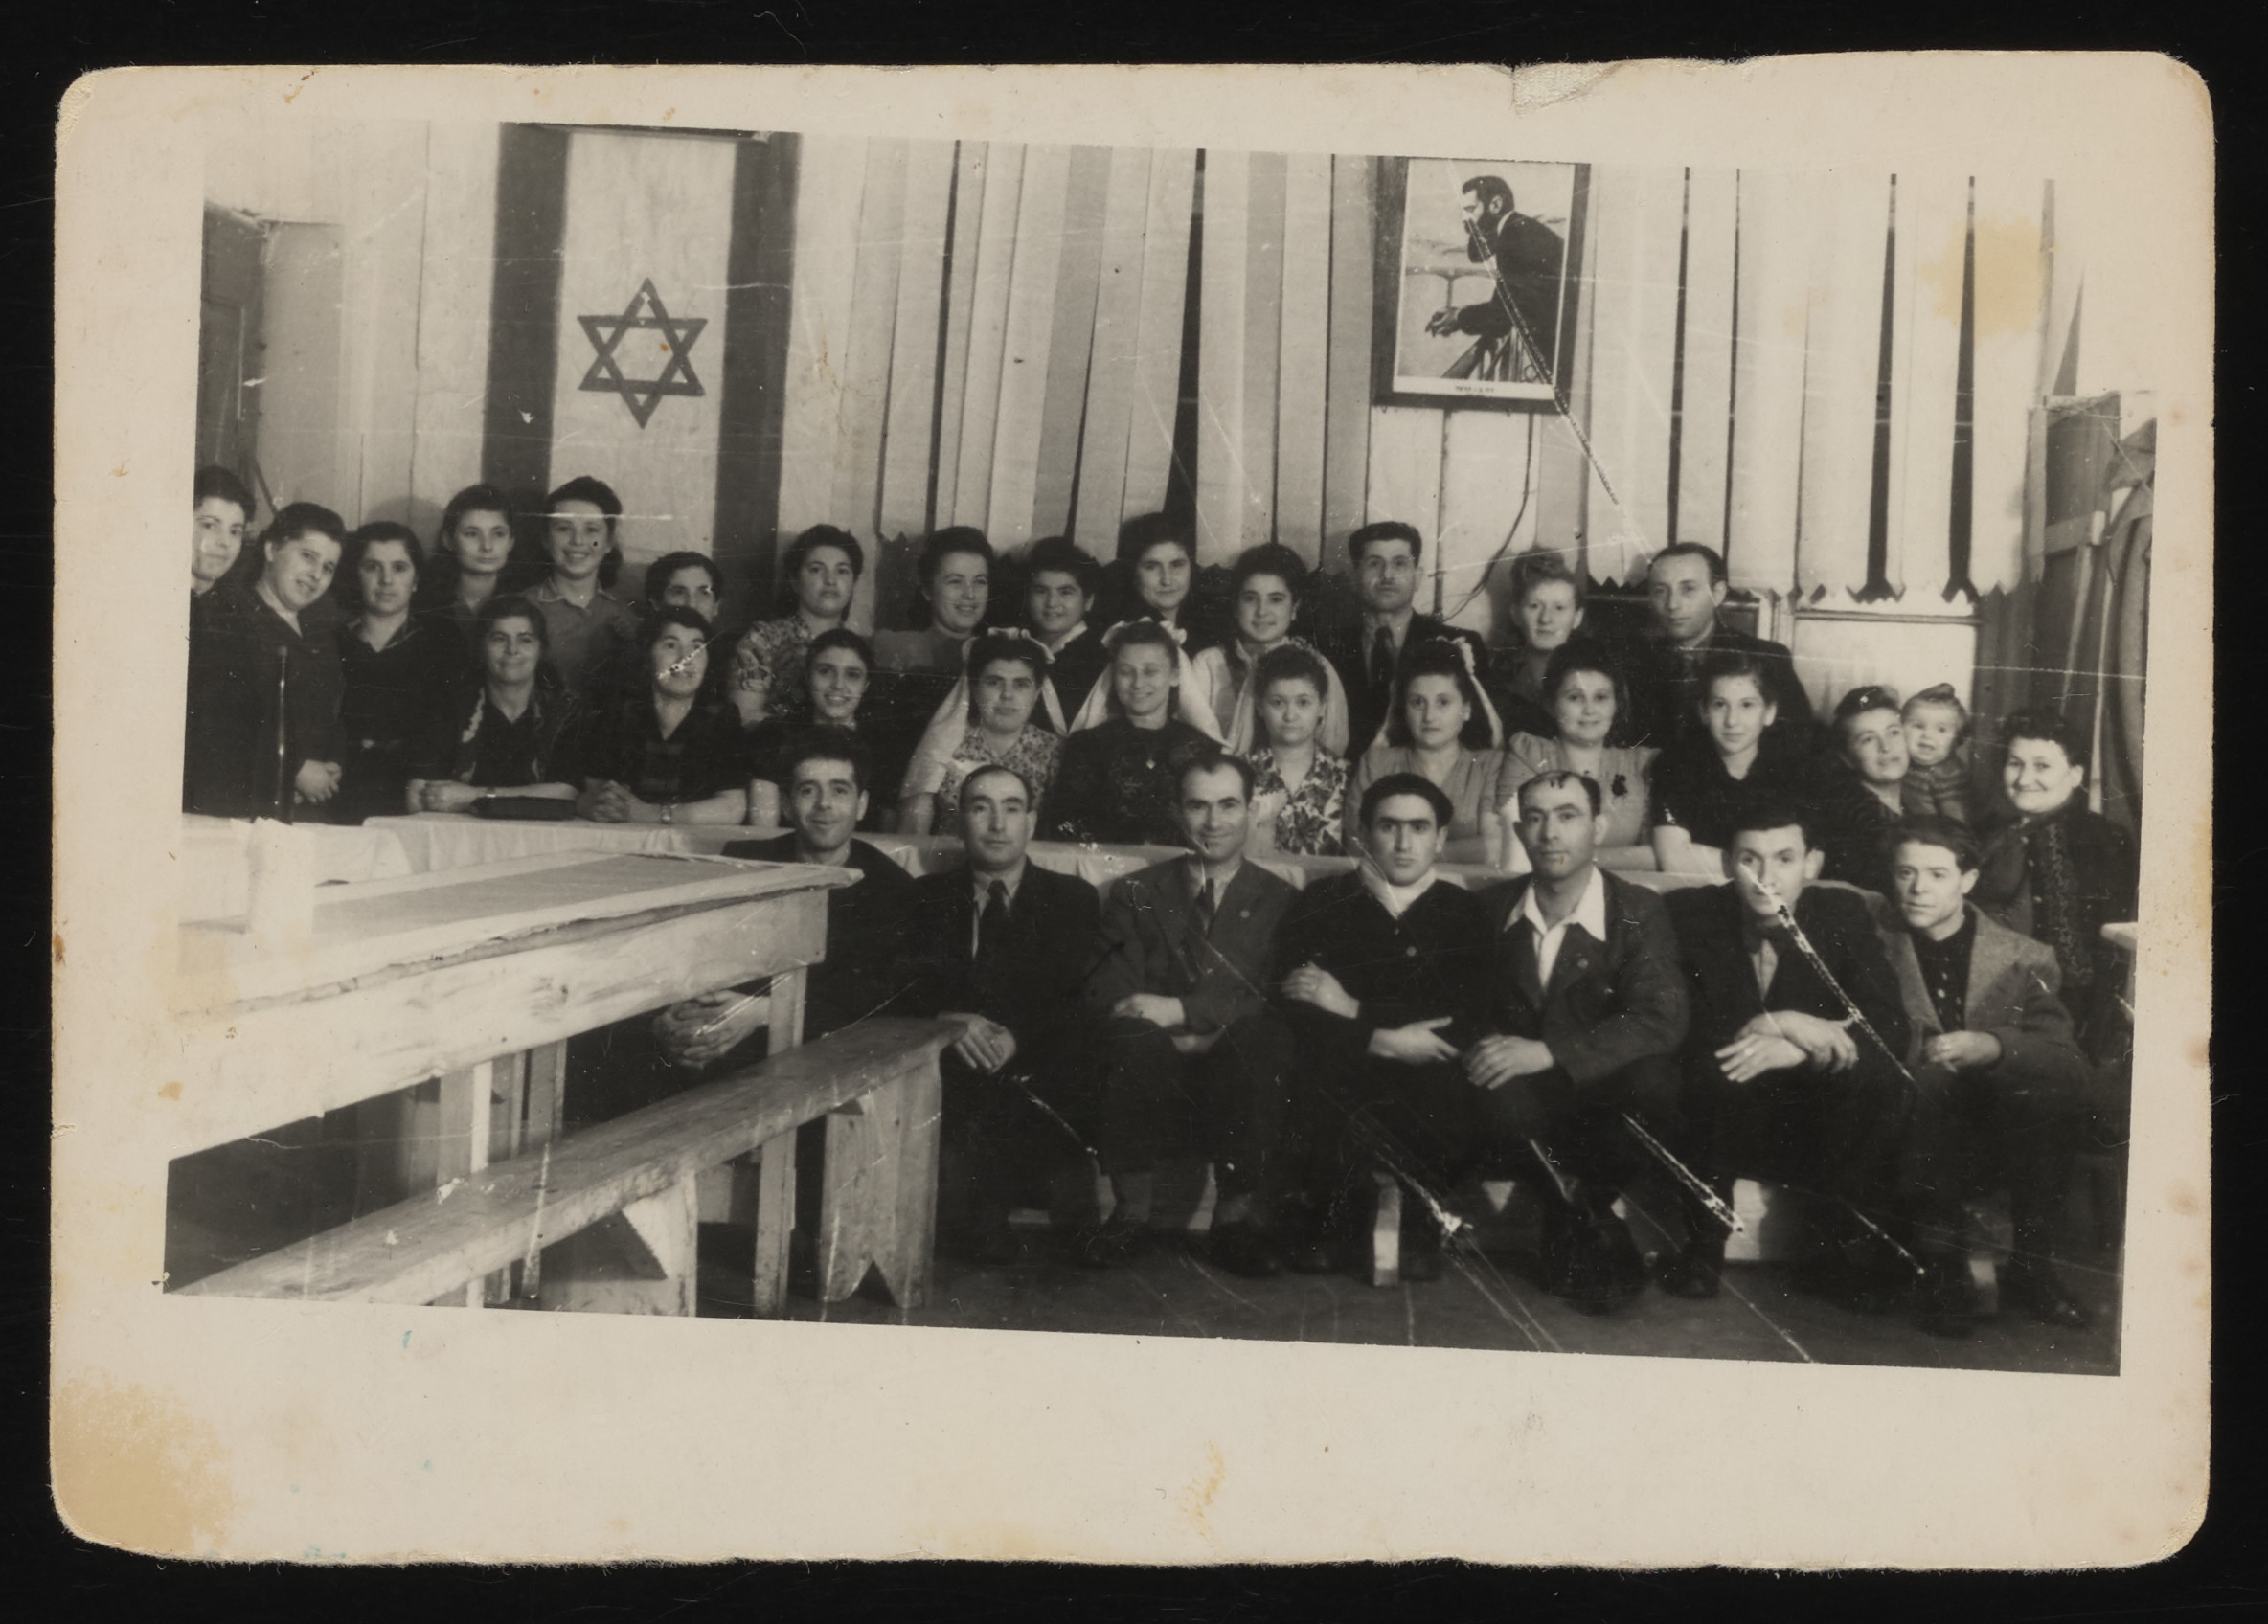 Members of Kibbutz Hatikvah in the Hofgeismar DP camp celebrate the wedding of four couples.  Among those pictured is Dora Kohl from Lvov holding her daughter Miriam. Standing third from left is Leah Rozow Tagfogel (Day).